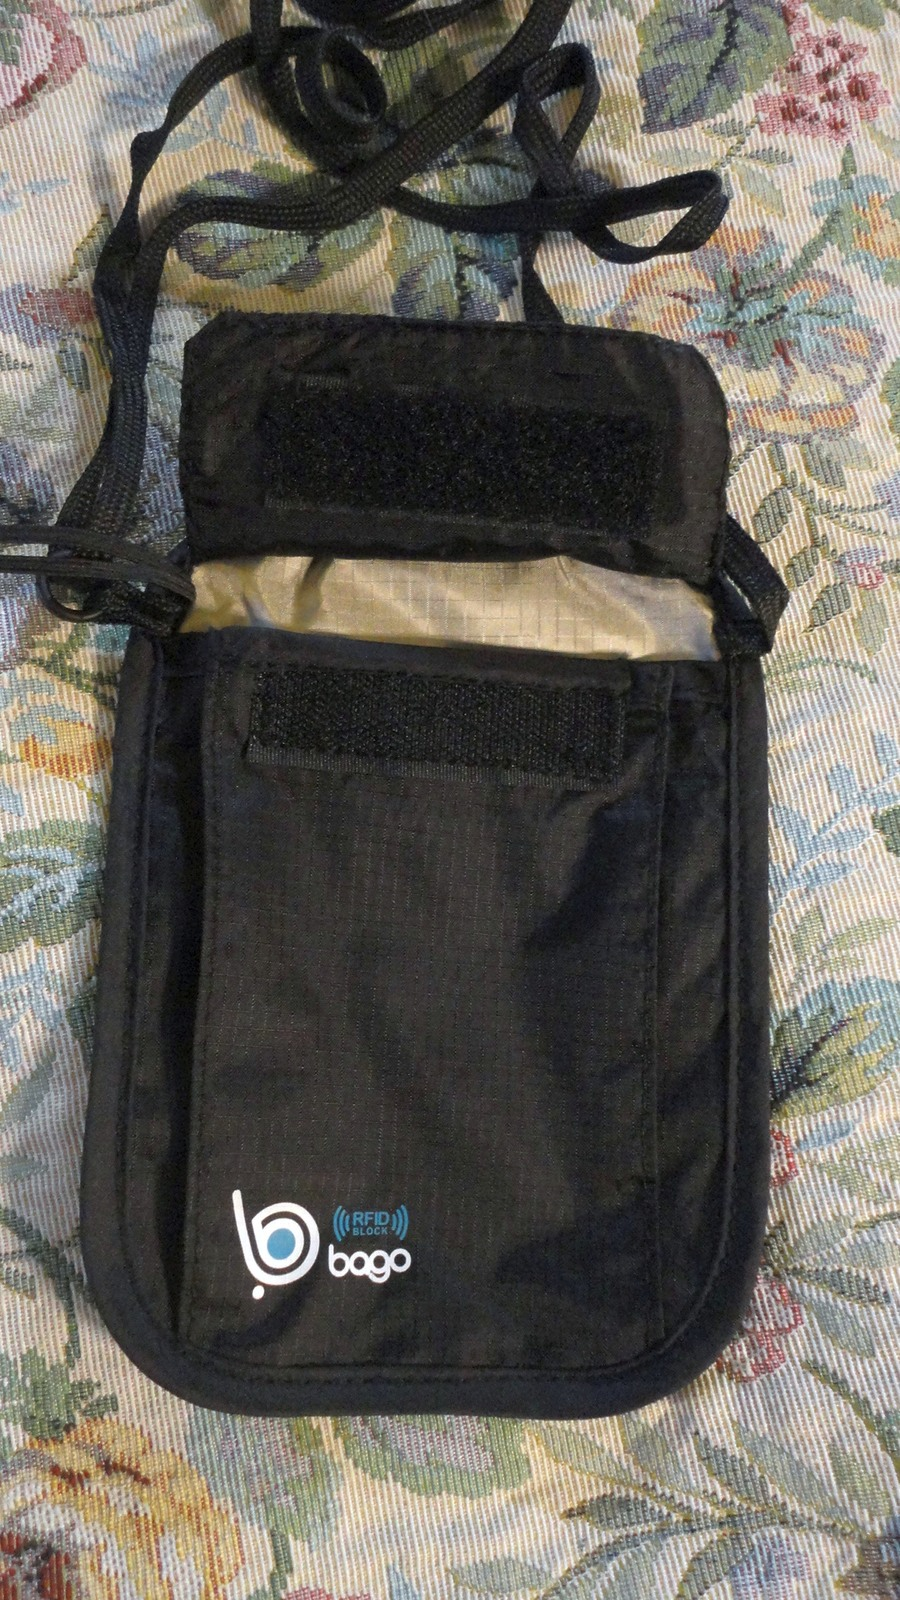 Bago Passport Pouch with RFID Shield